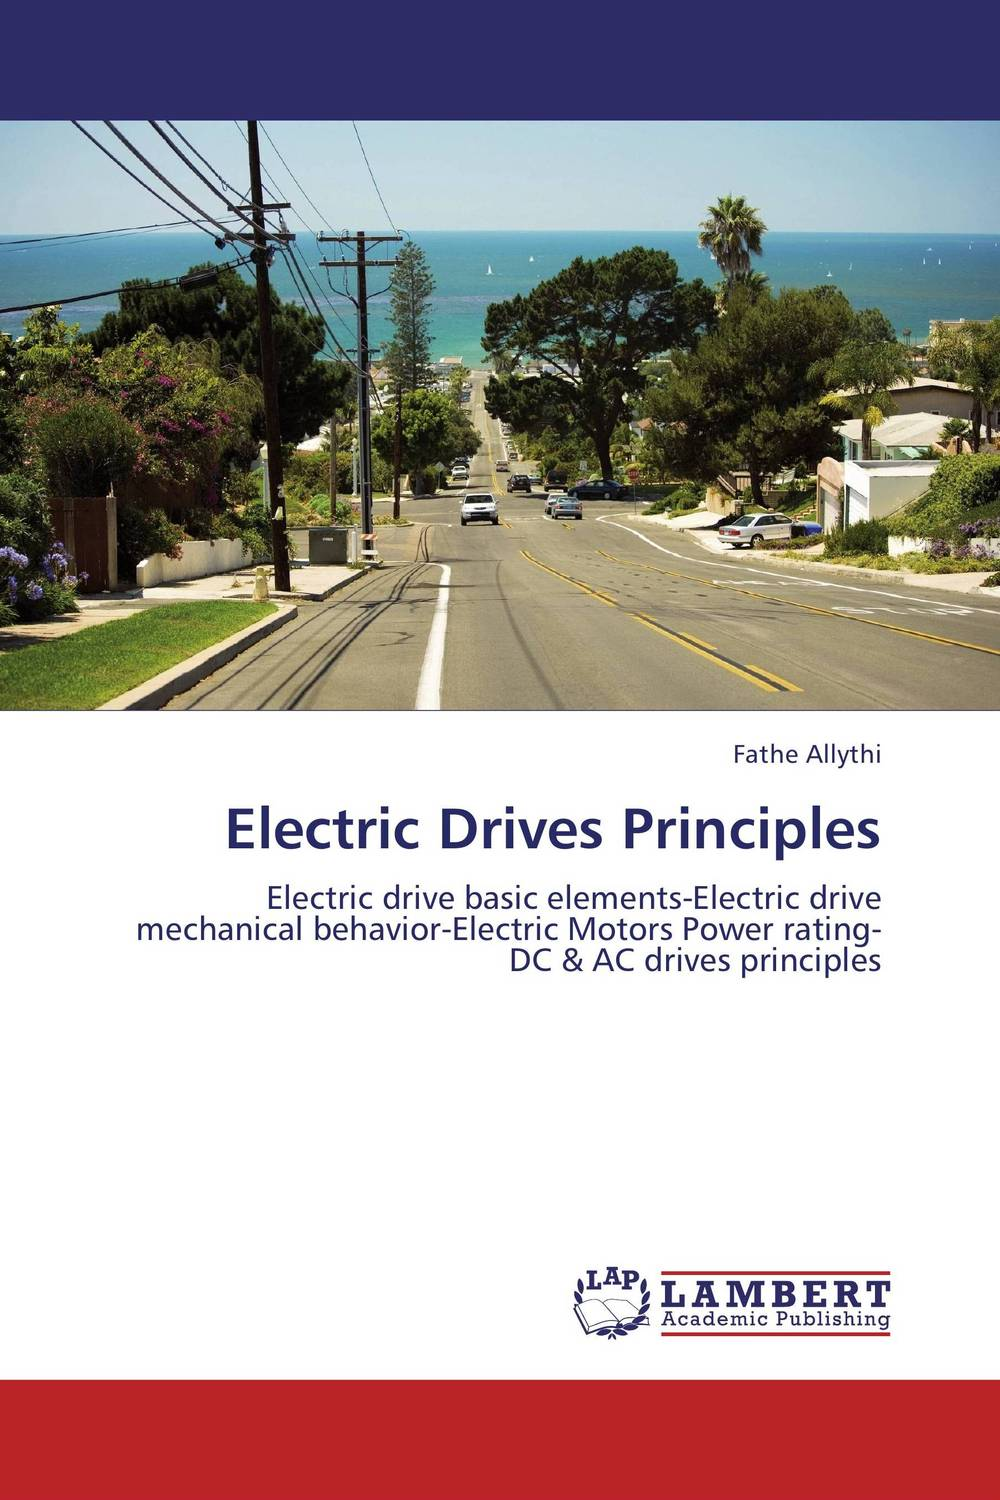 Electric Drives Principles